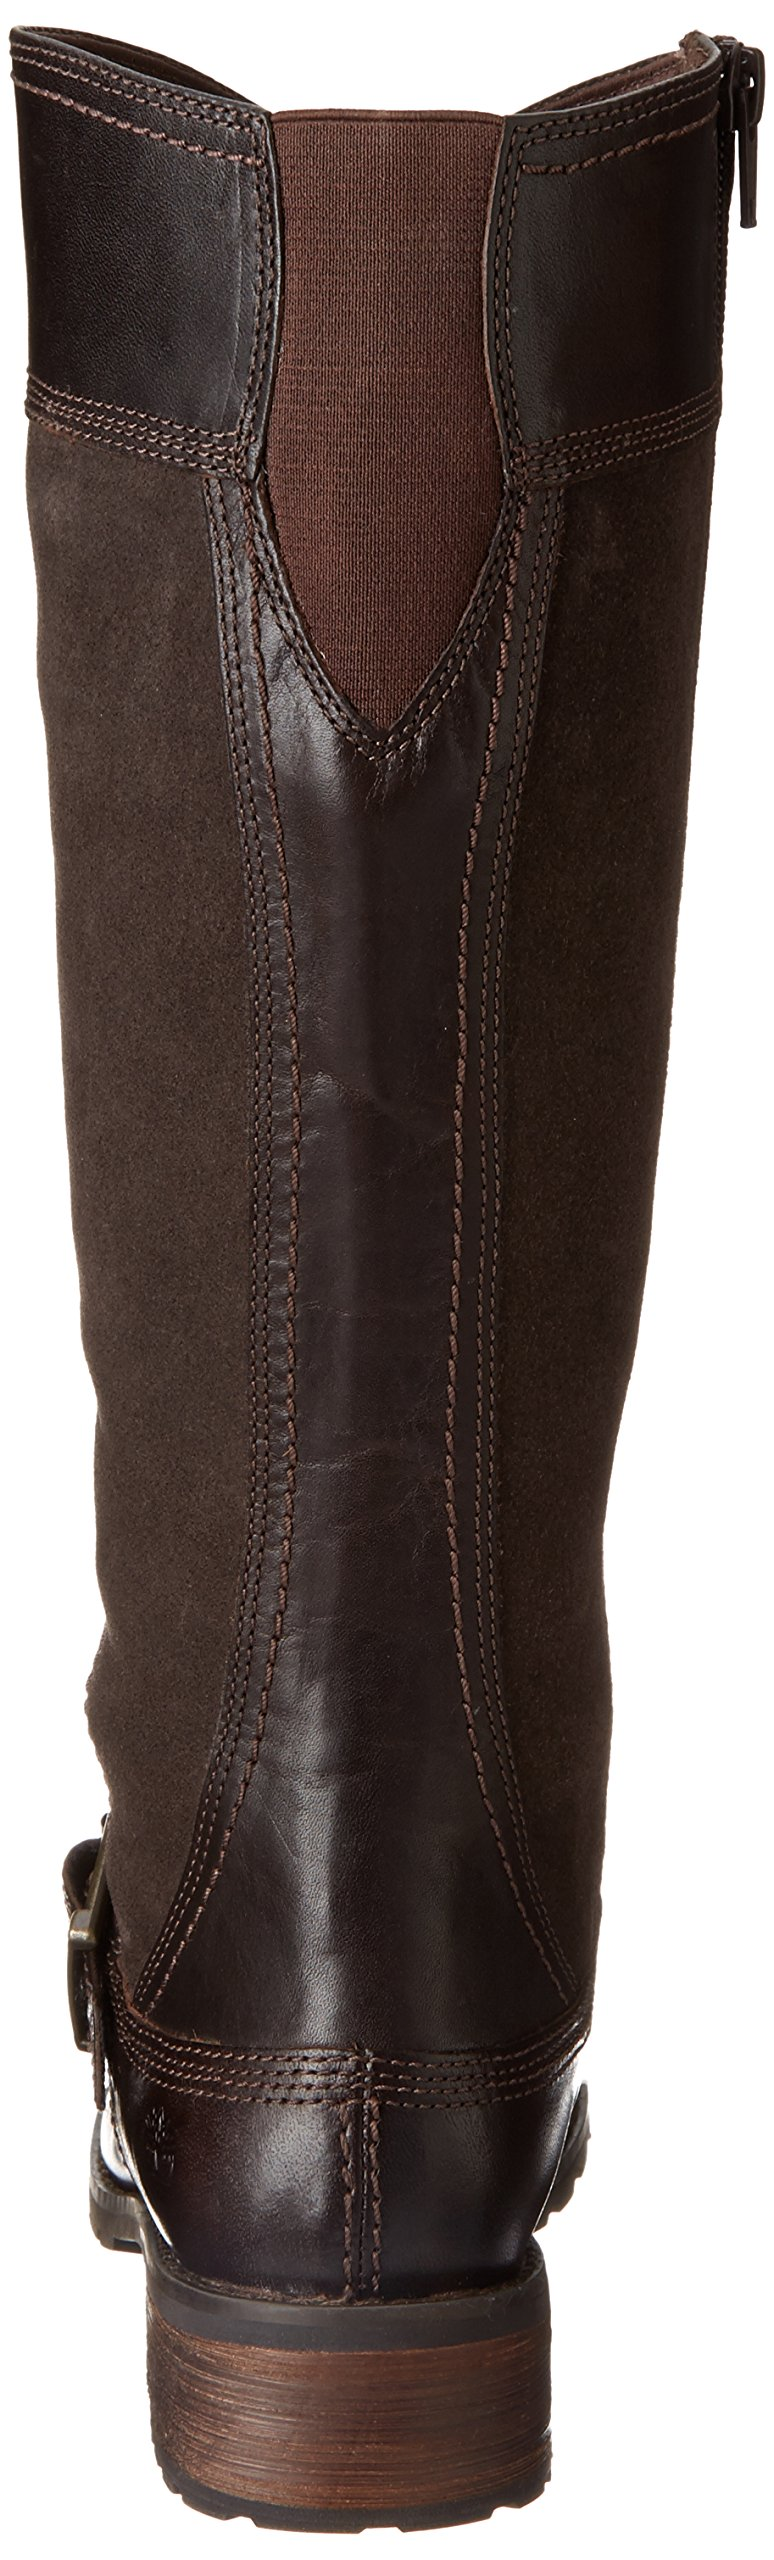 Timberland Women's EK Bethel Tall Harness Boot,Brown,6 W US by Timberland (Image #2)